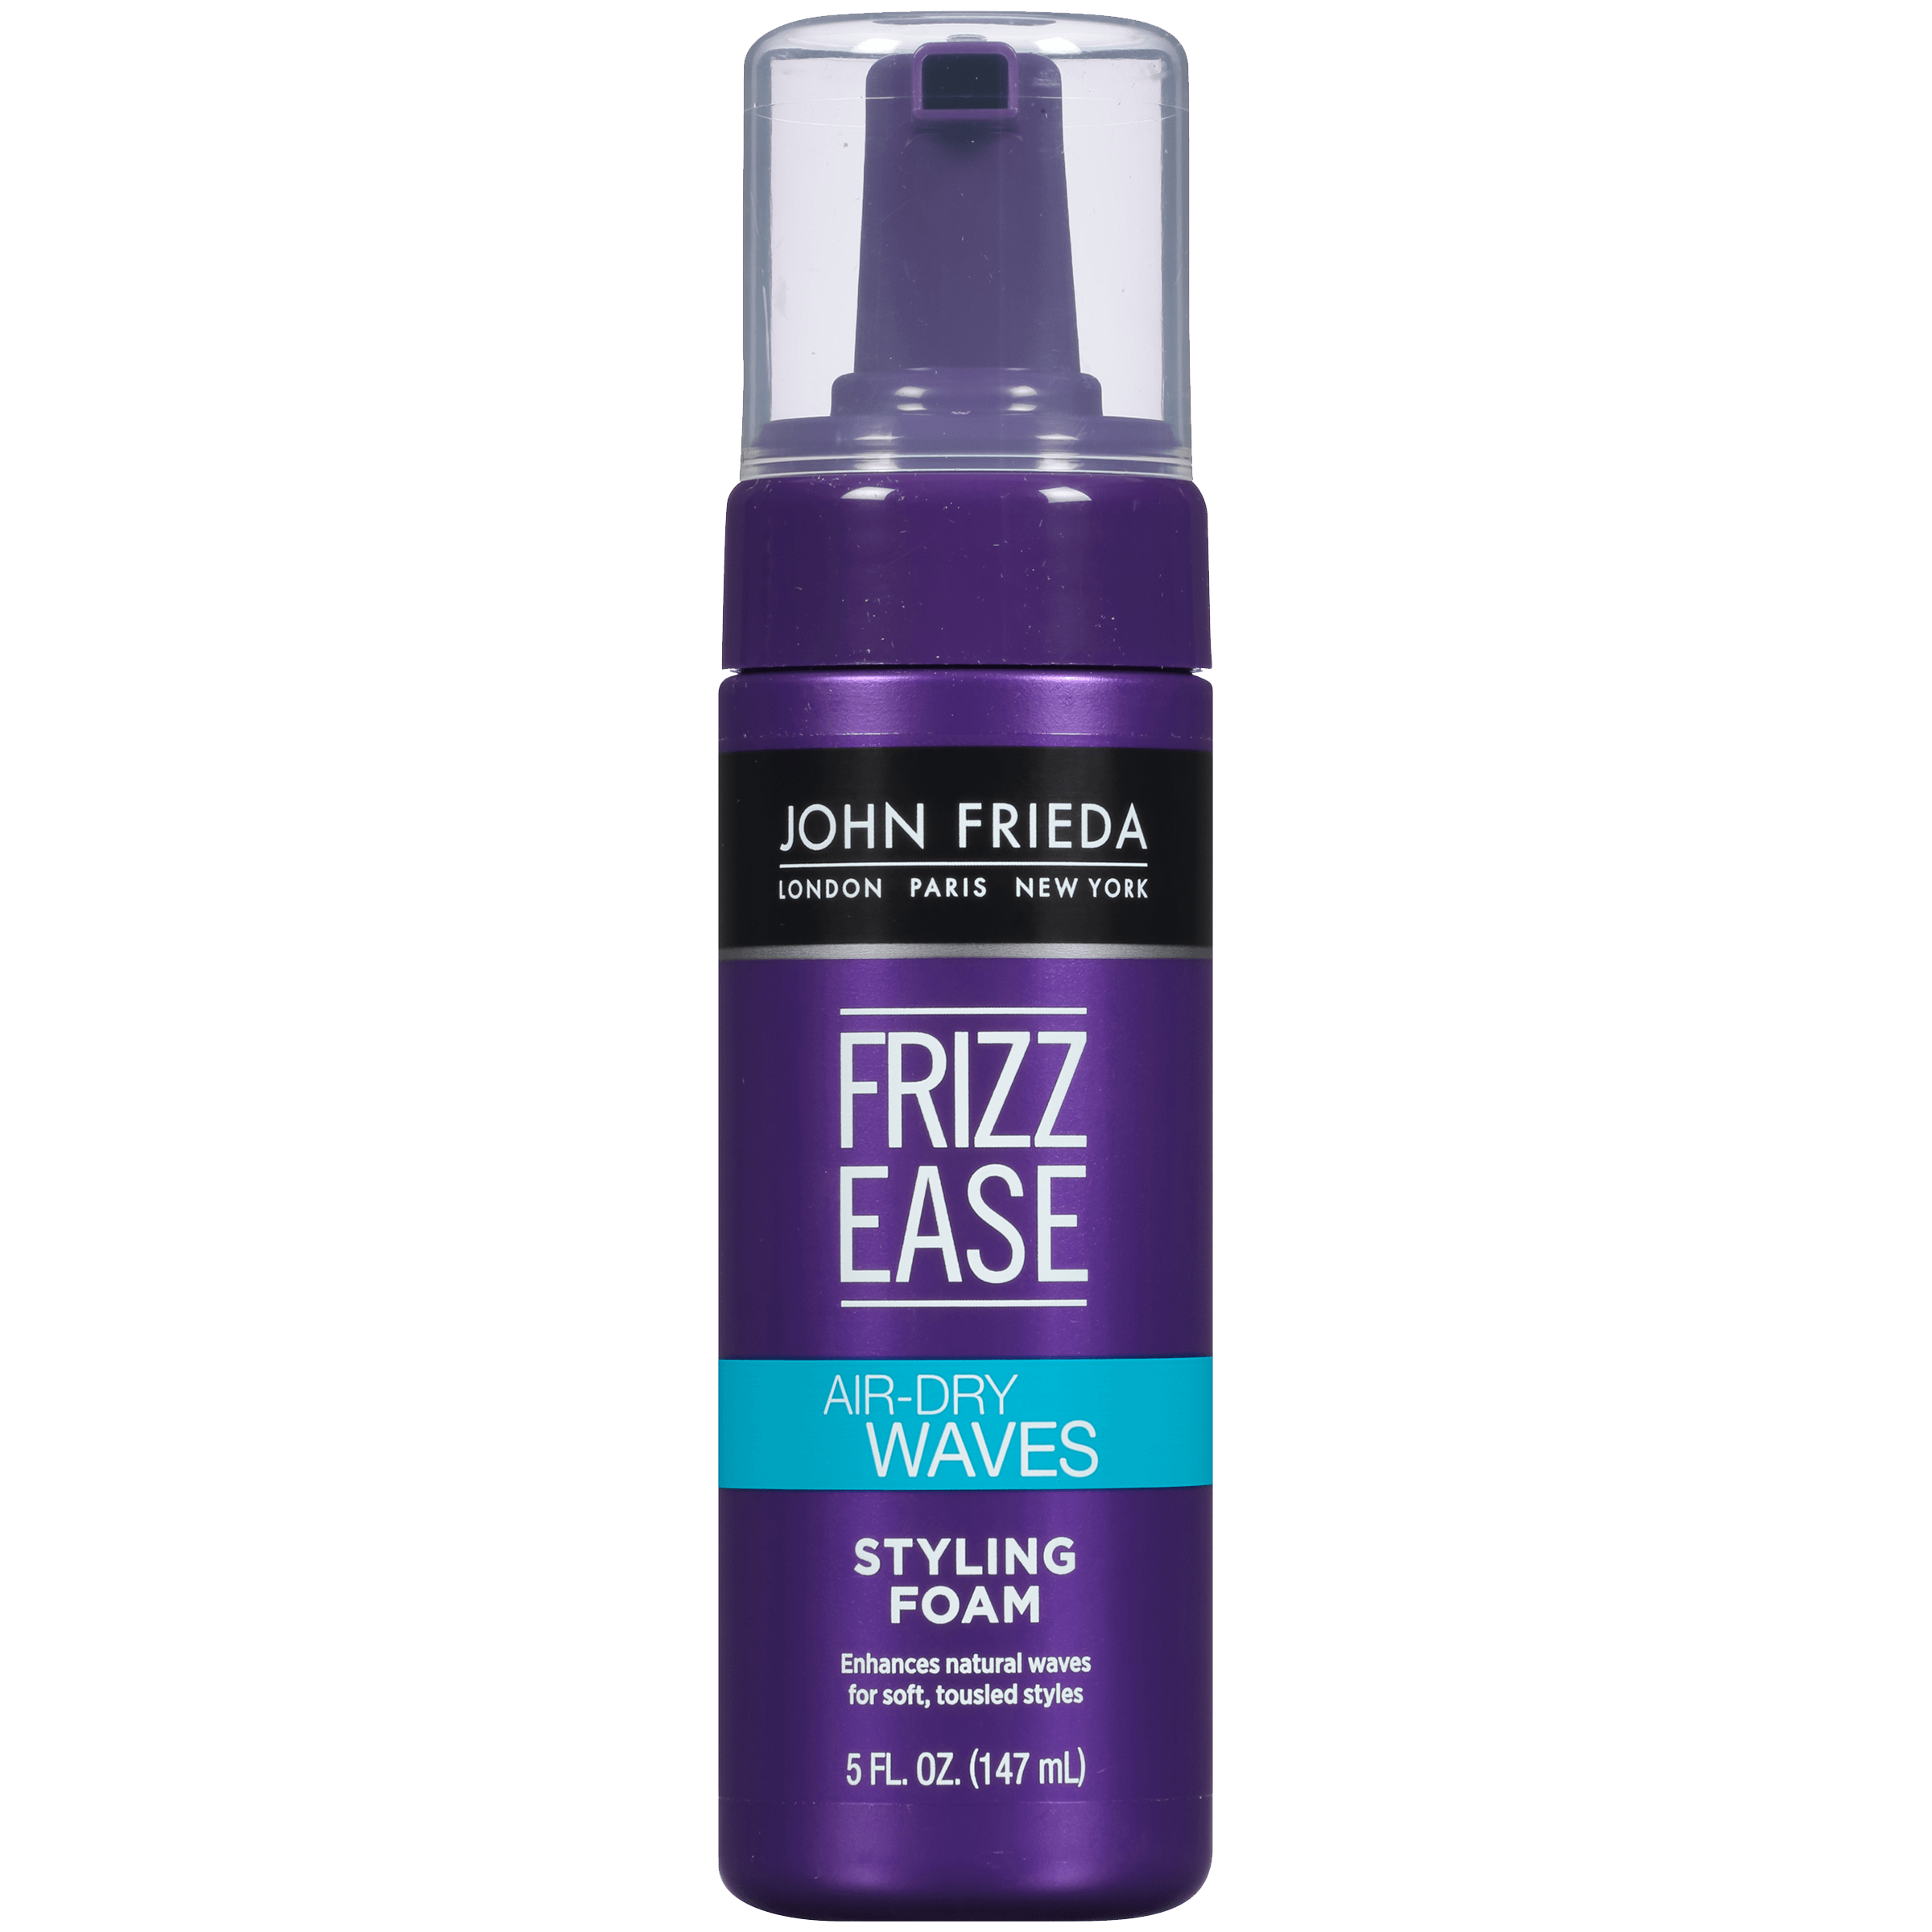 Frizz Ease Dream Curls Air-dry Waves